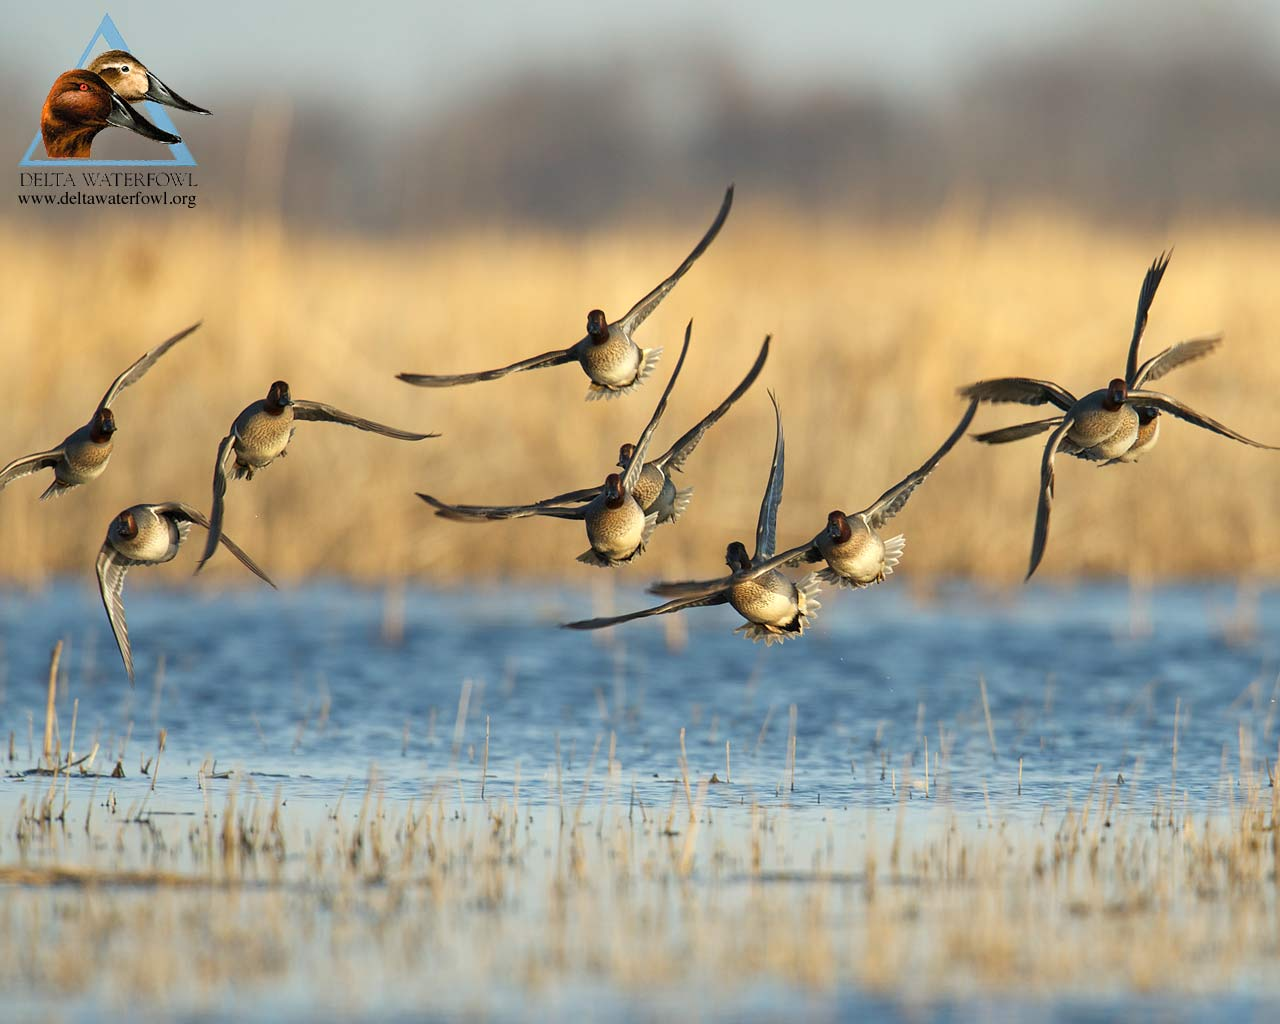 Image Gallery For Waterfowl Wallpaper 1280x1024